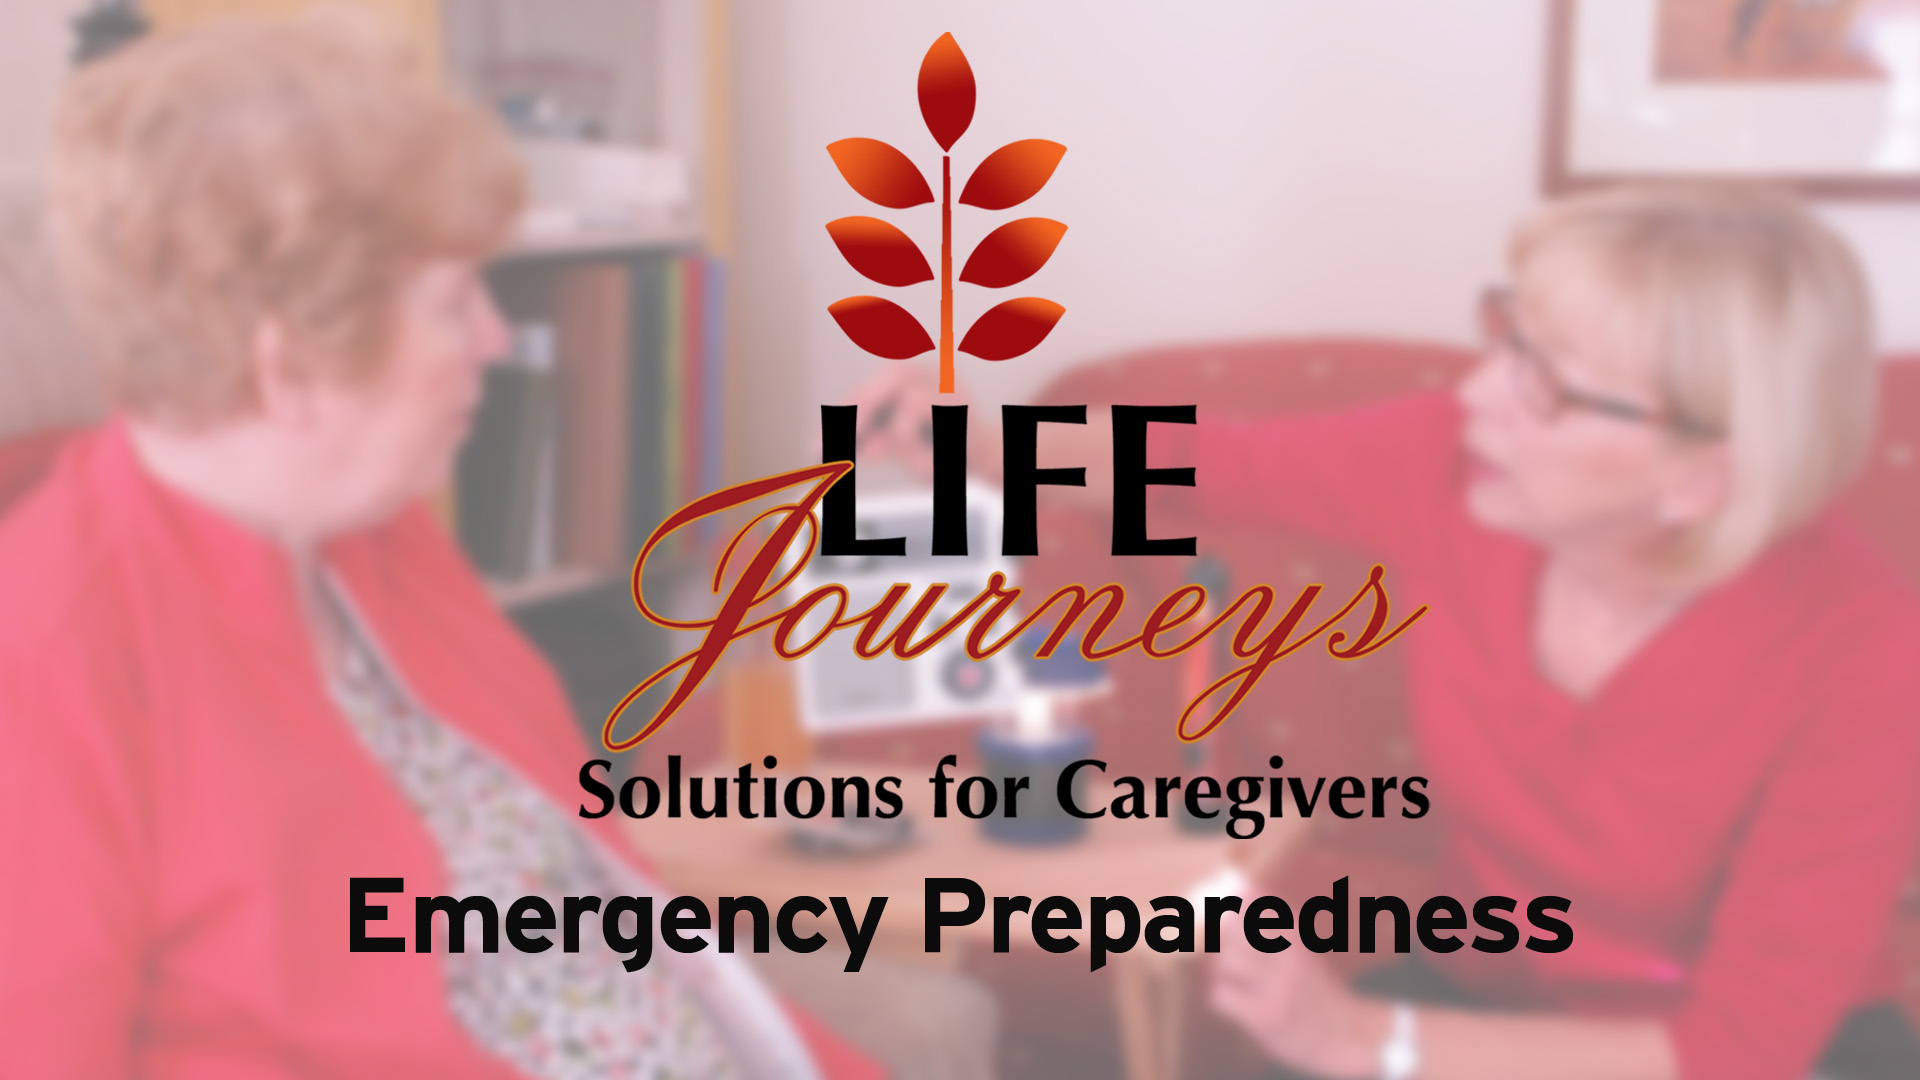 Life Journeys: Emergency Preparedness